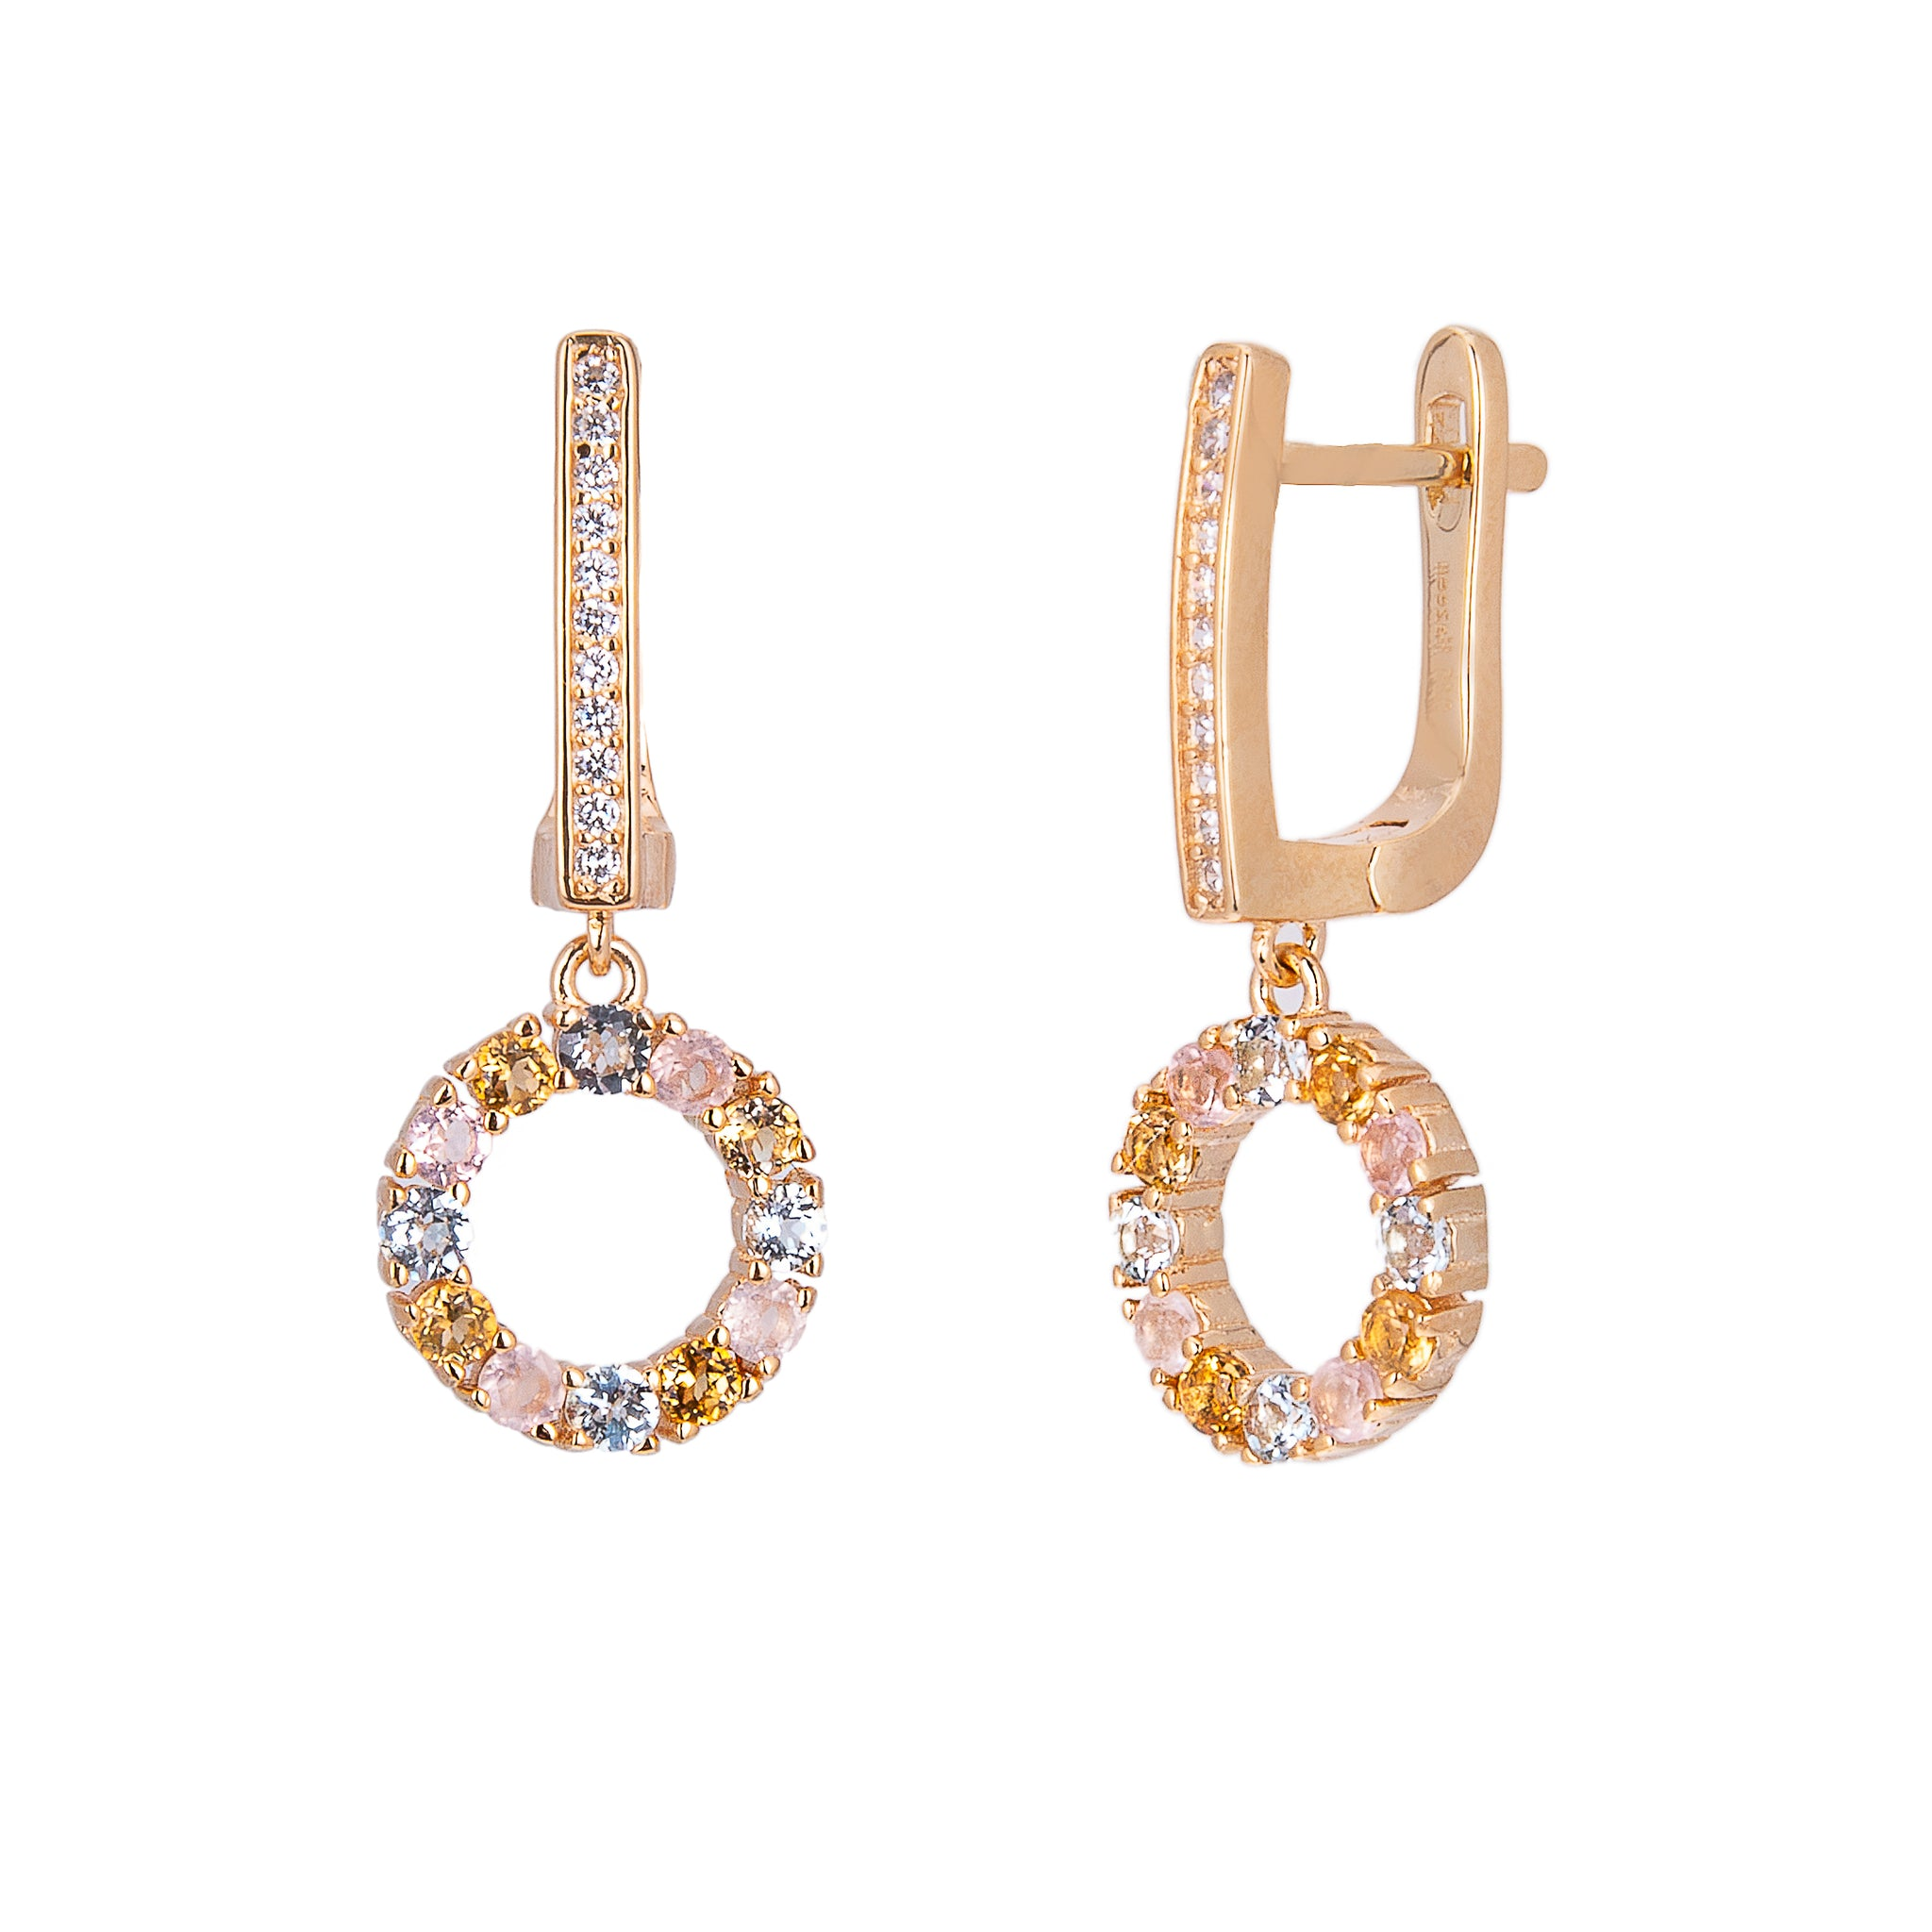 Venus Gold Drop Earrings